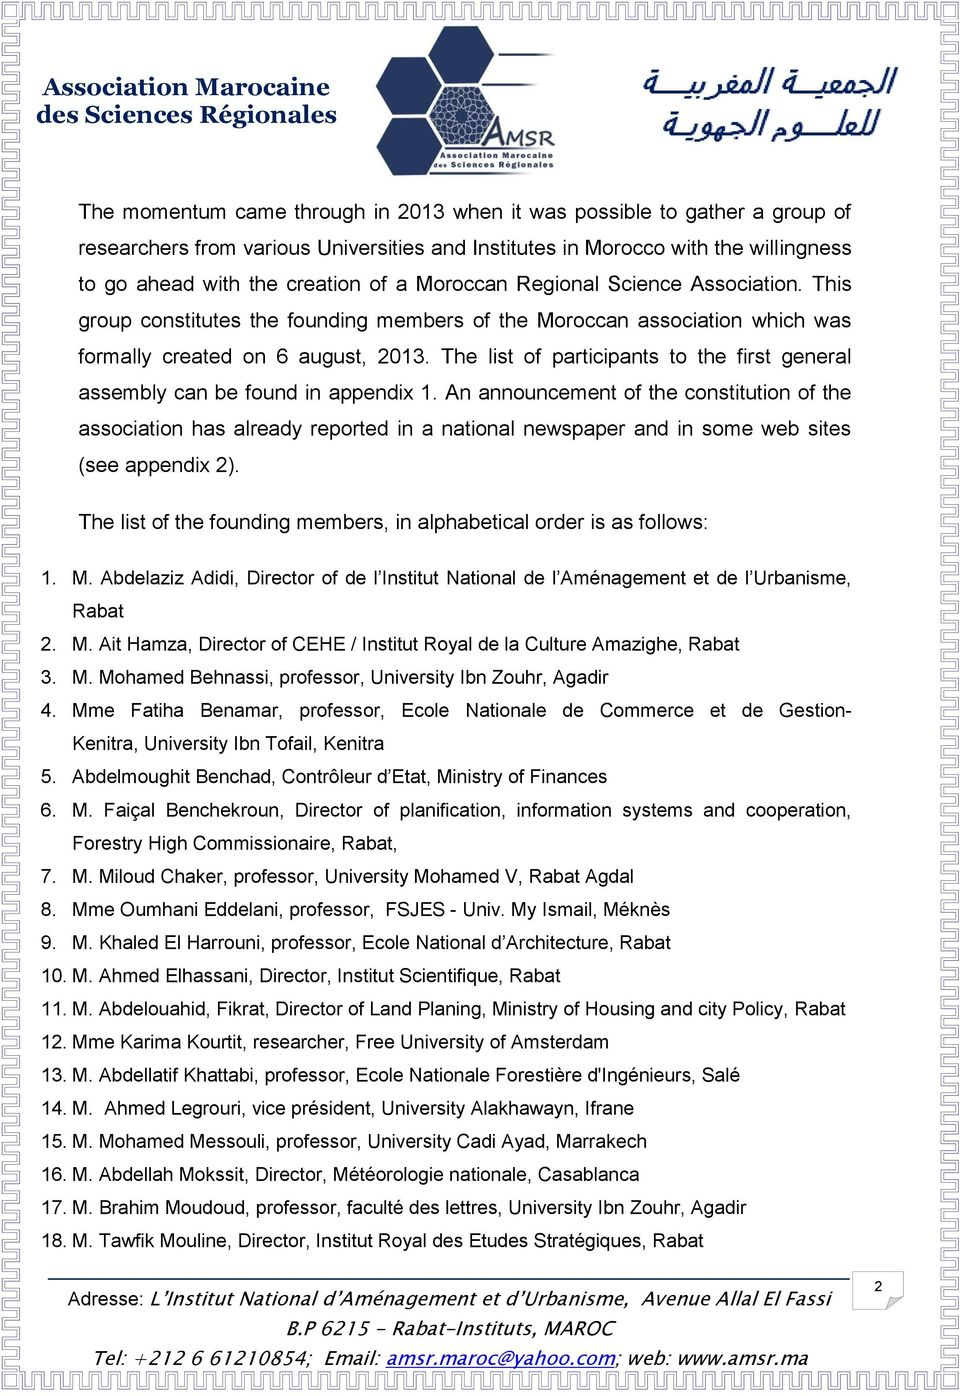 The list of participants to the first general assembly can be found in appendix 1.